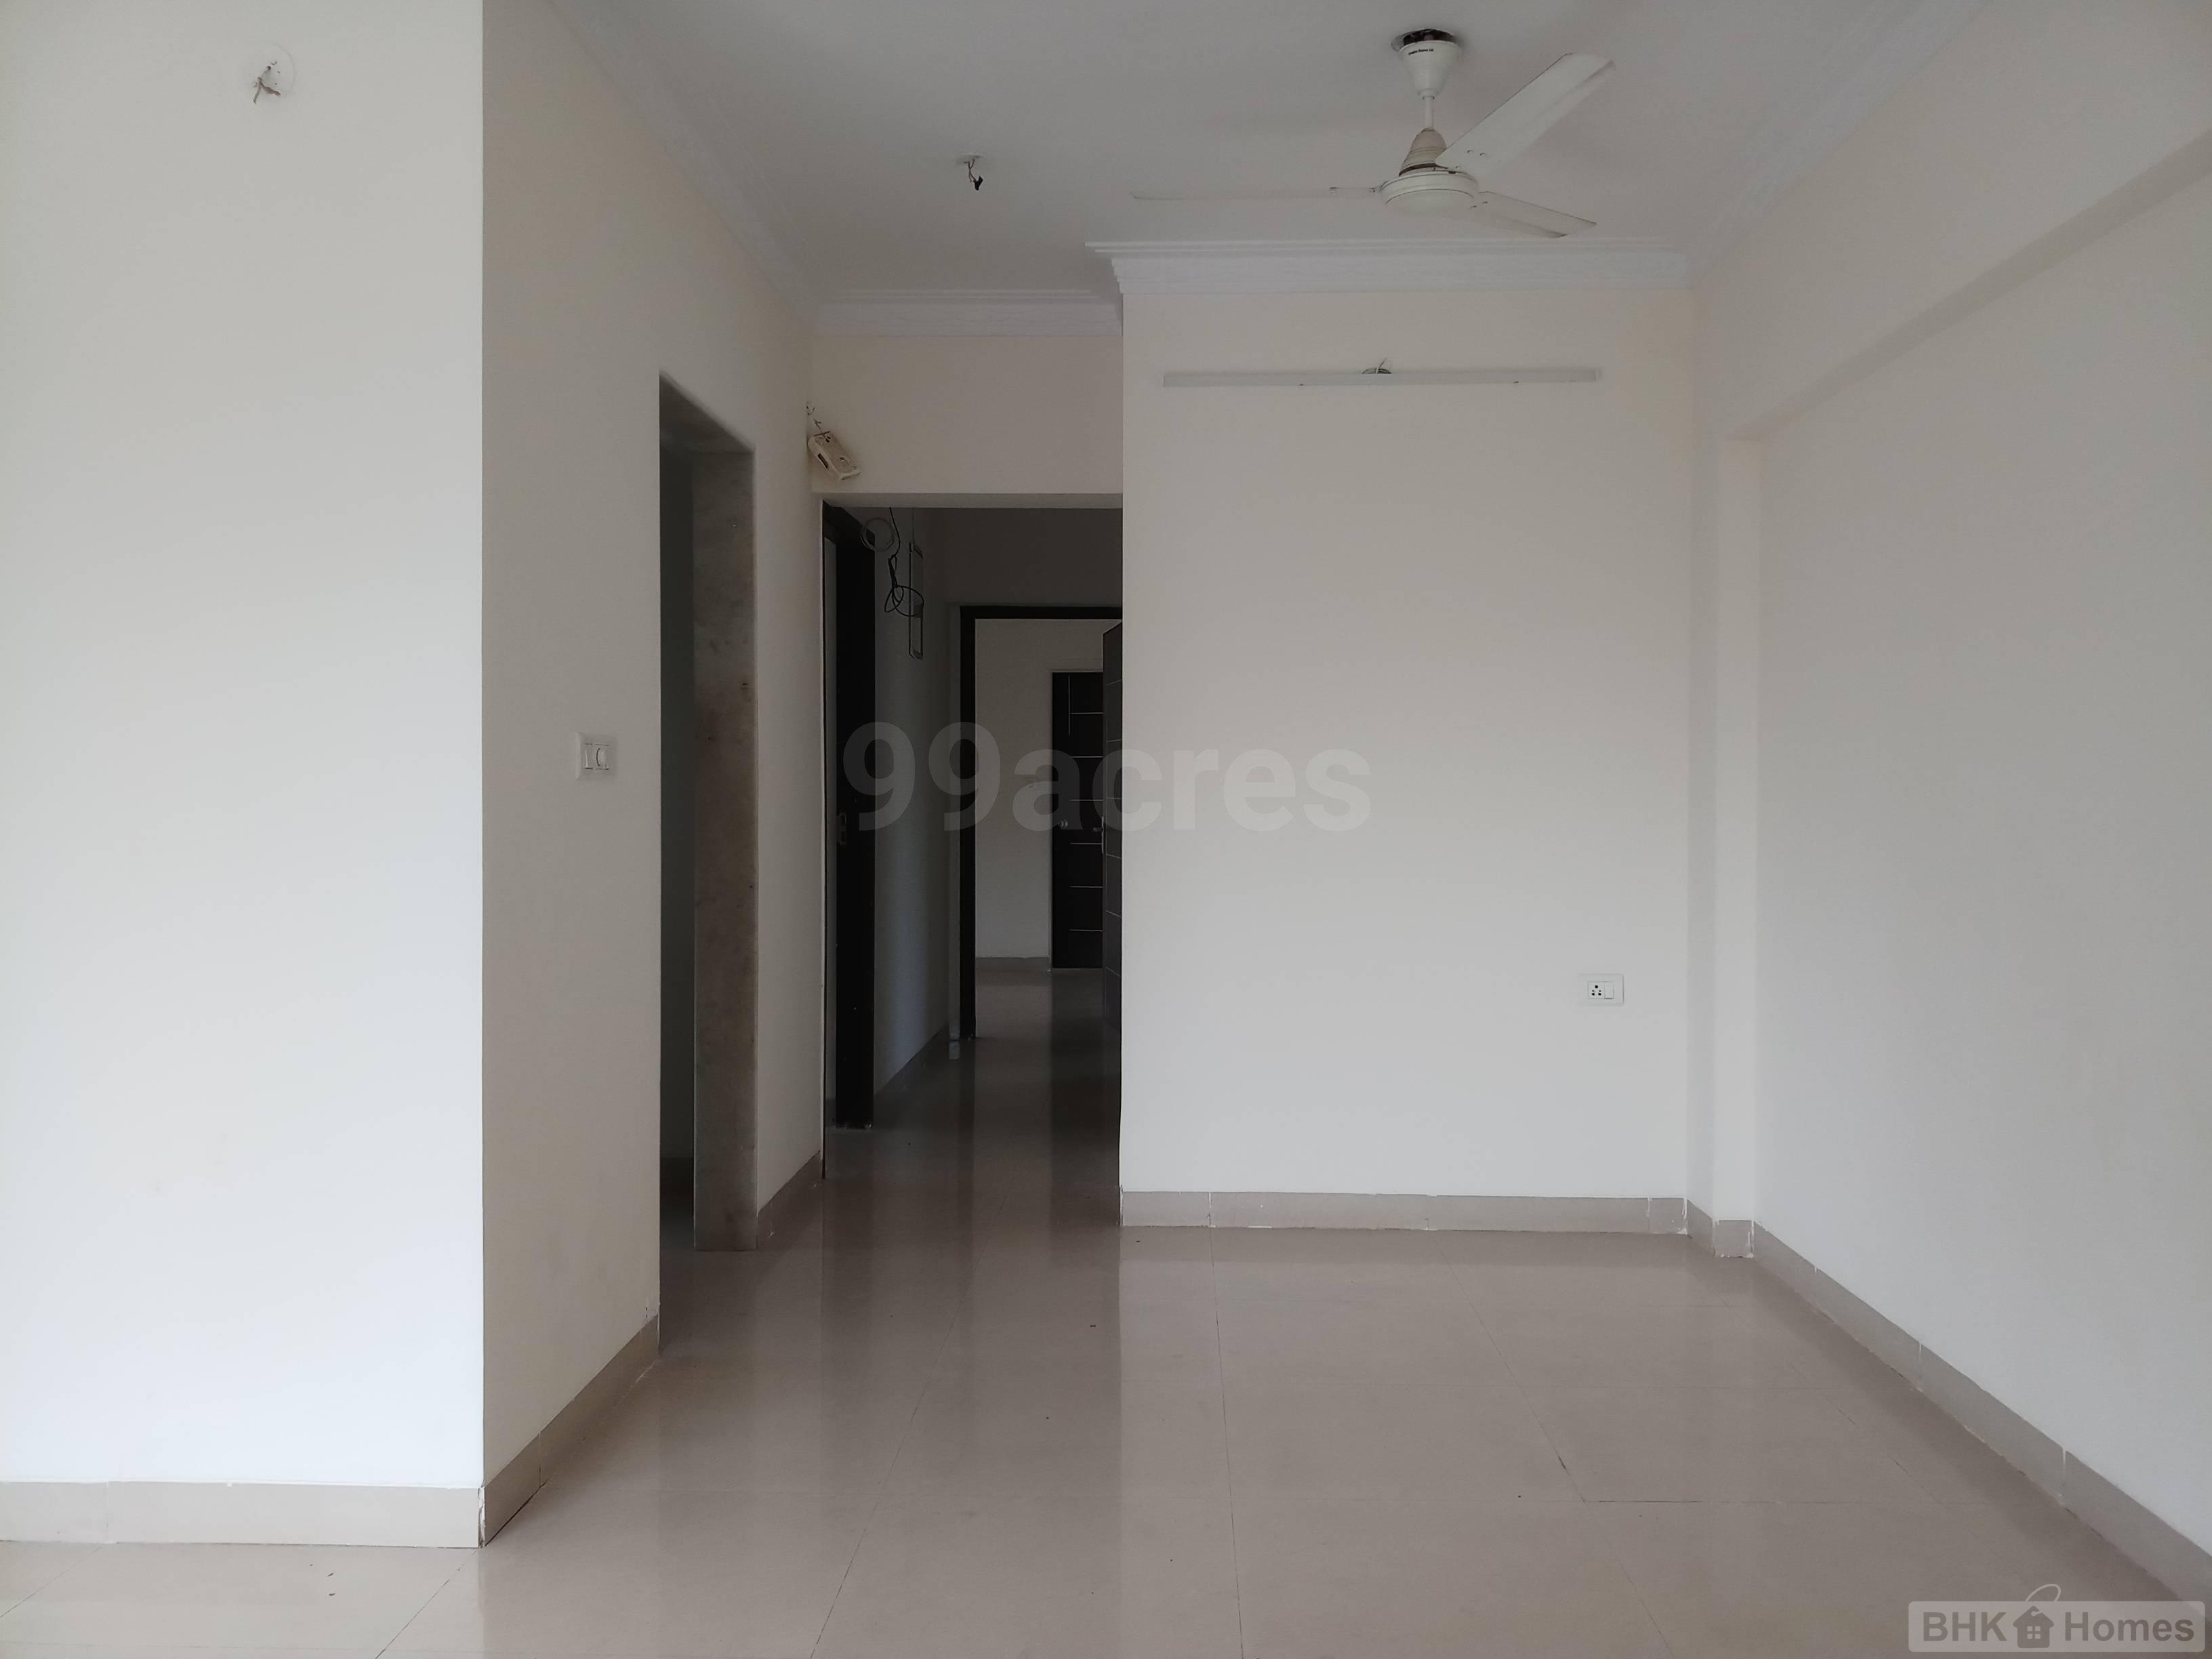 2 BHK Apartment for Sale  in Kandivali West